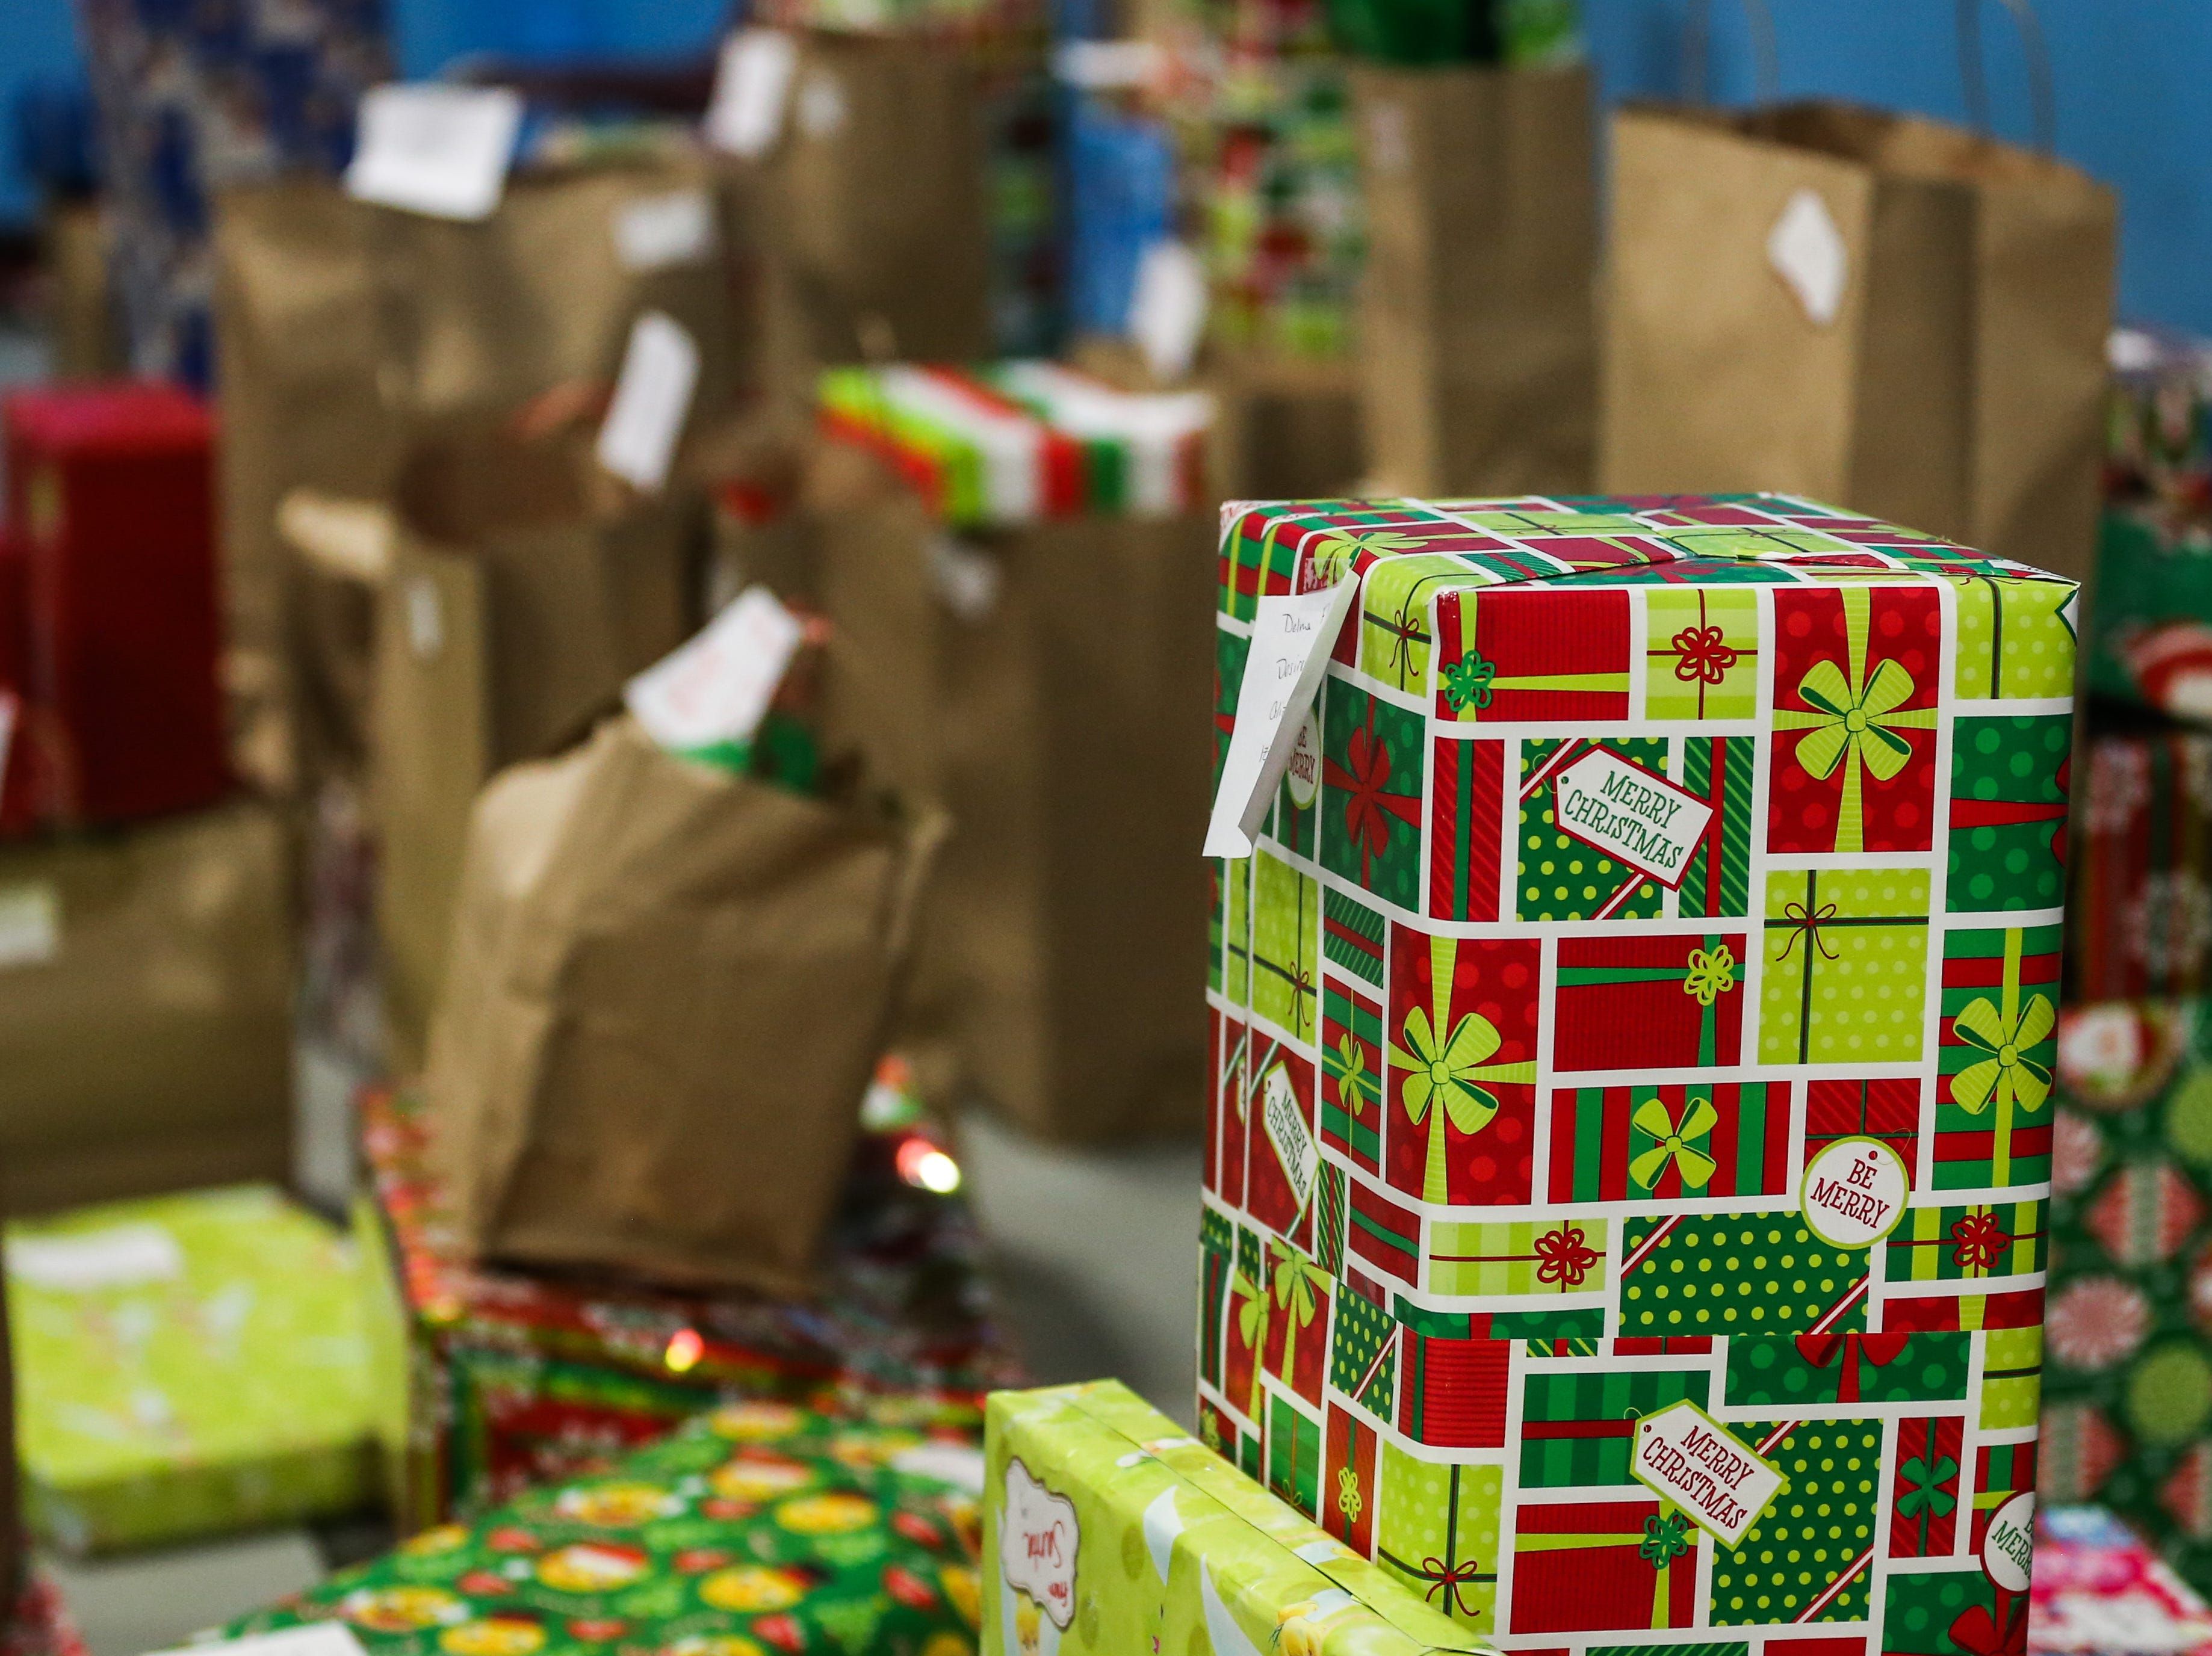 Gifts line the wall during the In the Spirit of Christmas party Saturday, Dec. 15, 2018, at the Southside Recreation Center.